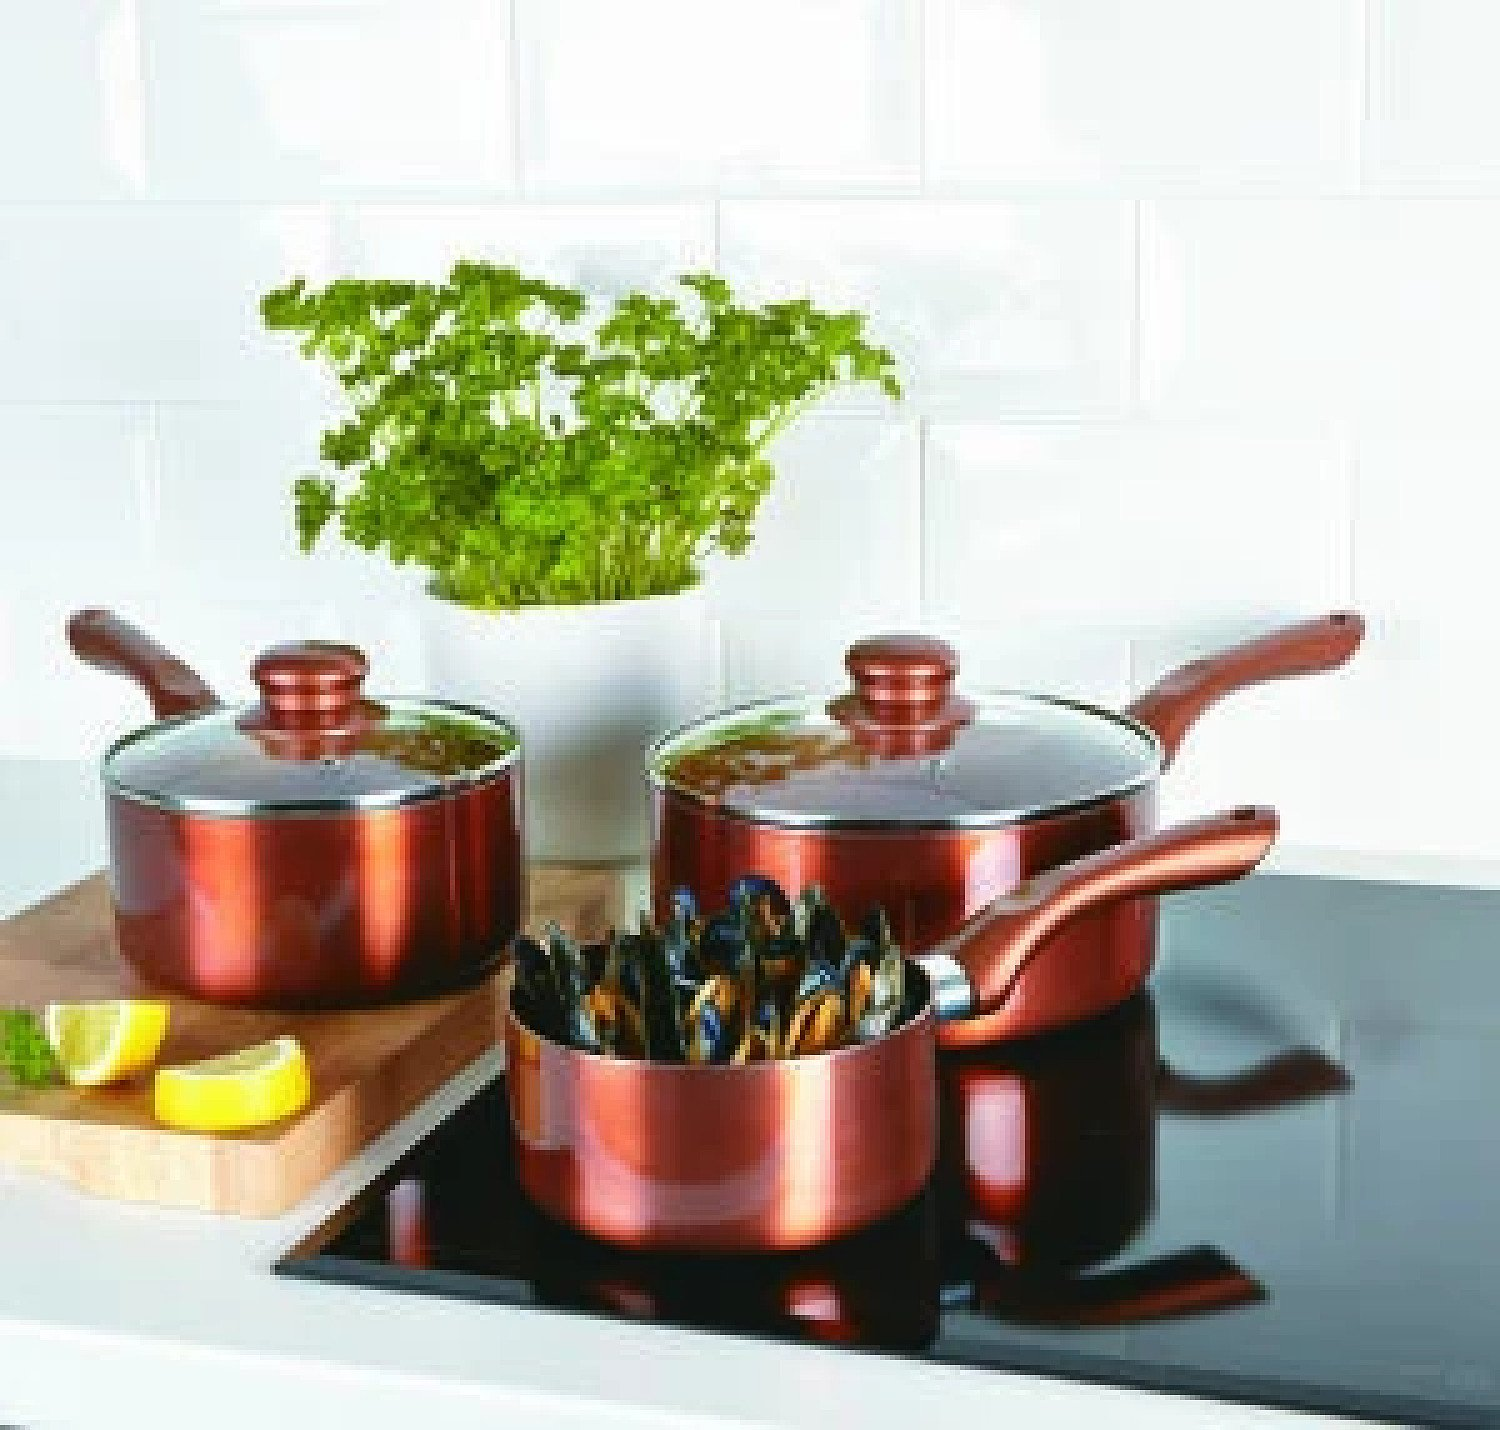 3 pc. Saucepan Set Ceramic 100% Non-Stick Healthy Cooking Cookware Copper Free Postage